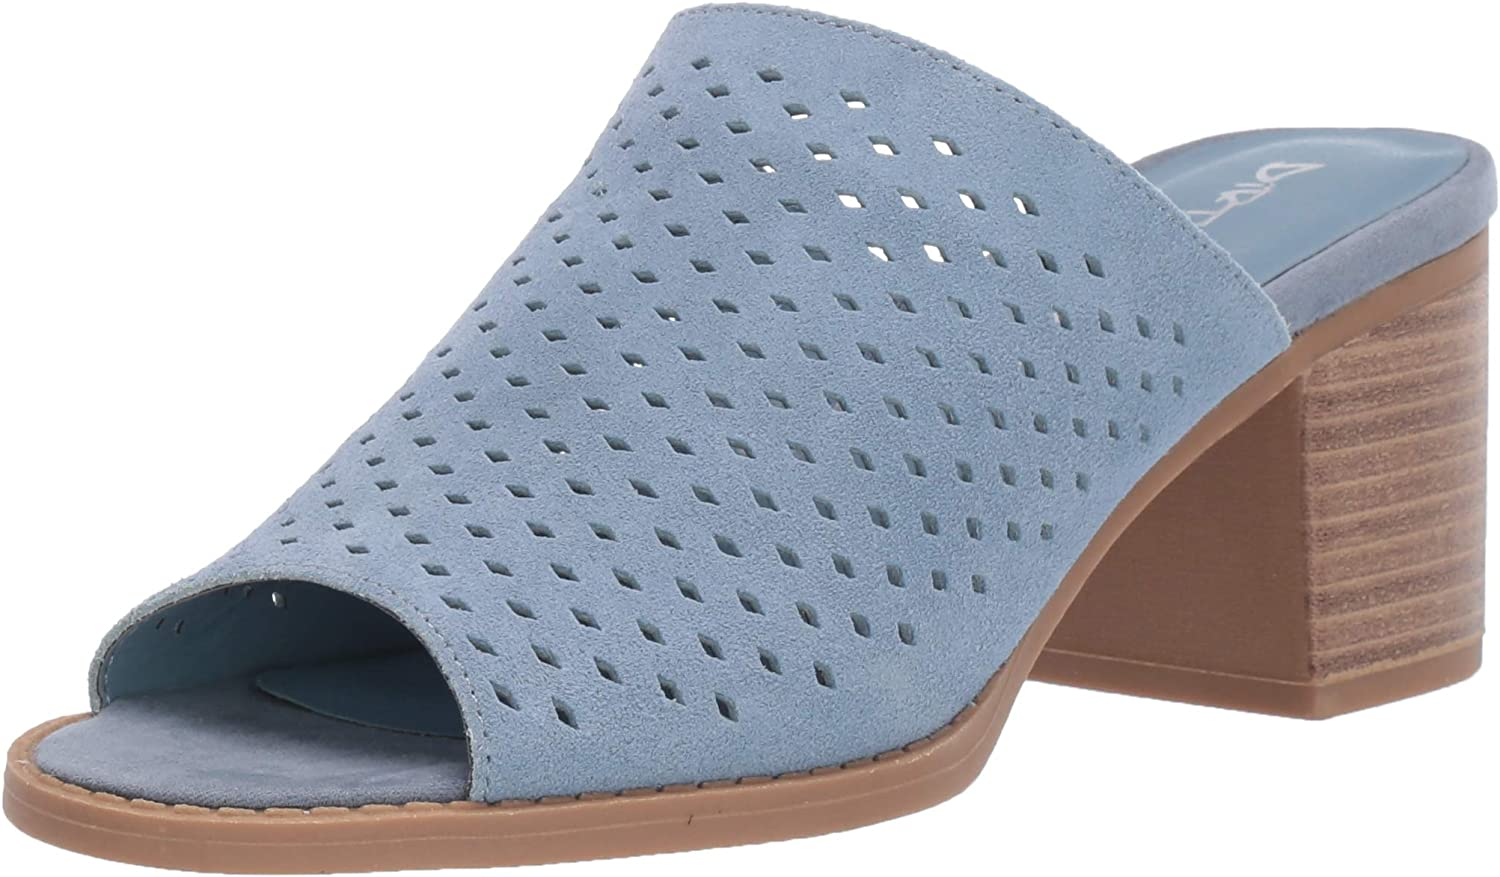 Dirty Laundry Women's Take Sandal All Max 53% OFF Ranking TOP16 Heeled